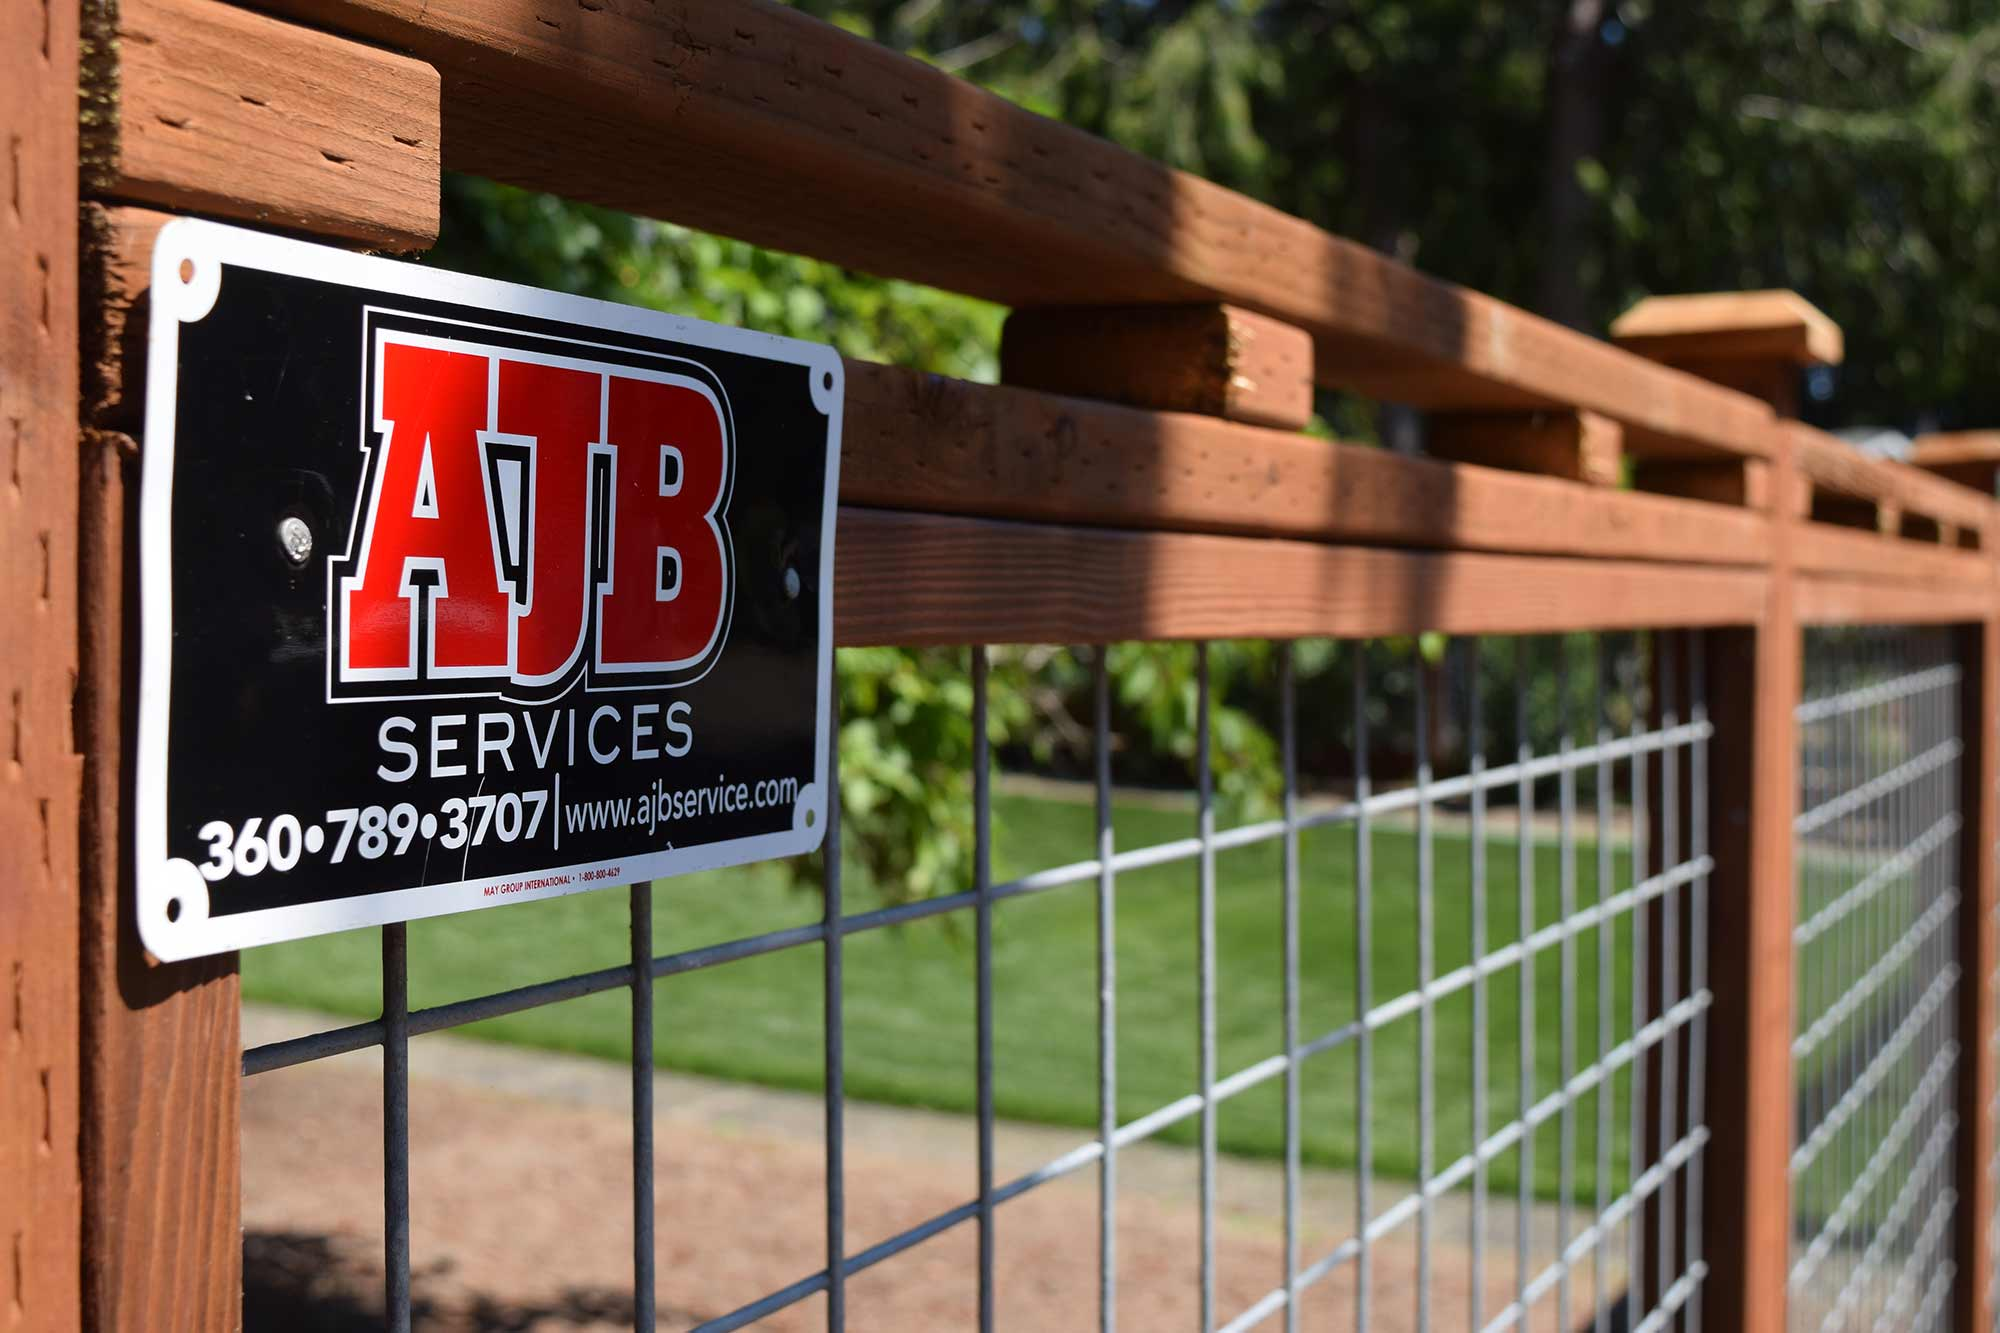 Made by AJB: this deer fence protects the front yard of this Cooper Point home from wildlife while still allowing the family to feel part of the neighborhood.